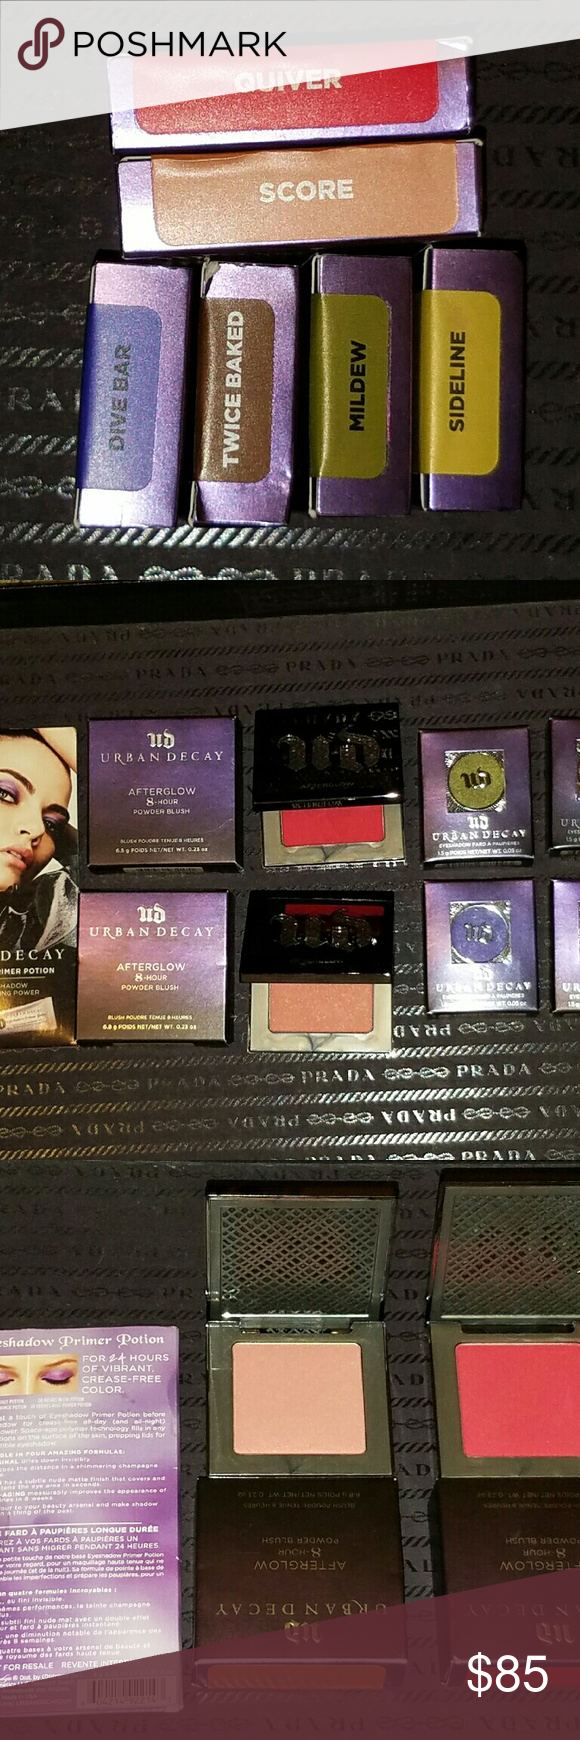 New Urban Decay Afterglow/eyeshadow bundle! Includes:  Urban Decay Afterglow in (Quiver & Score) Eyeshadows in ( Sideline, Dive Bar, Twice Baked and Mildew) Not selling individually.   All are brand new and Authentic  Price is firm. no Trades. Urban Decay Makeup Eyeshadow